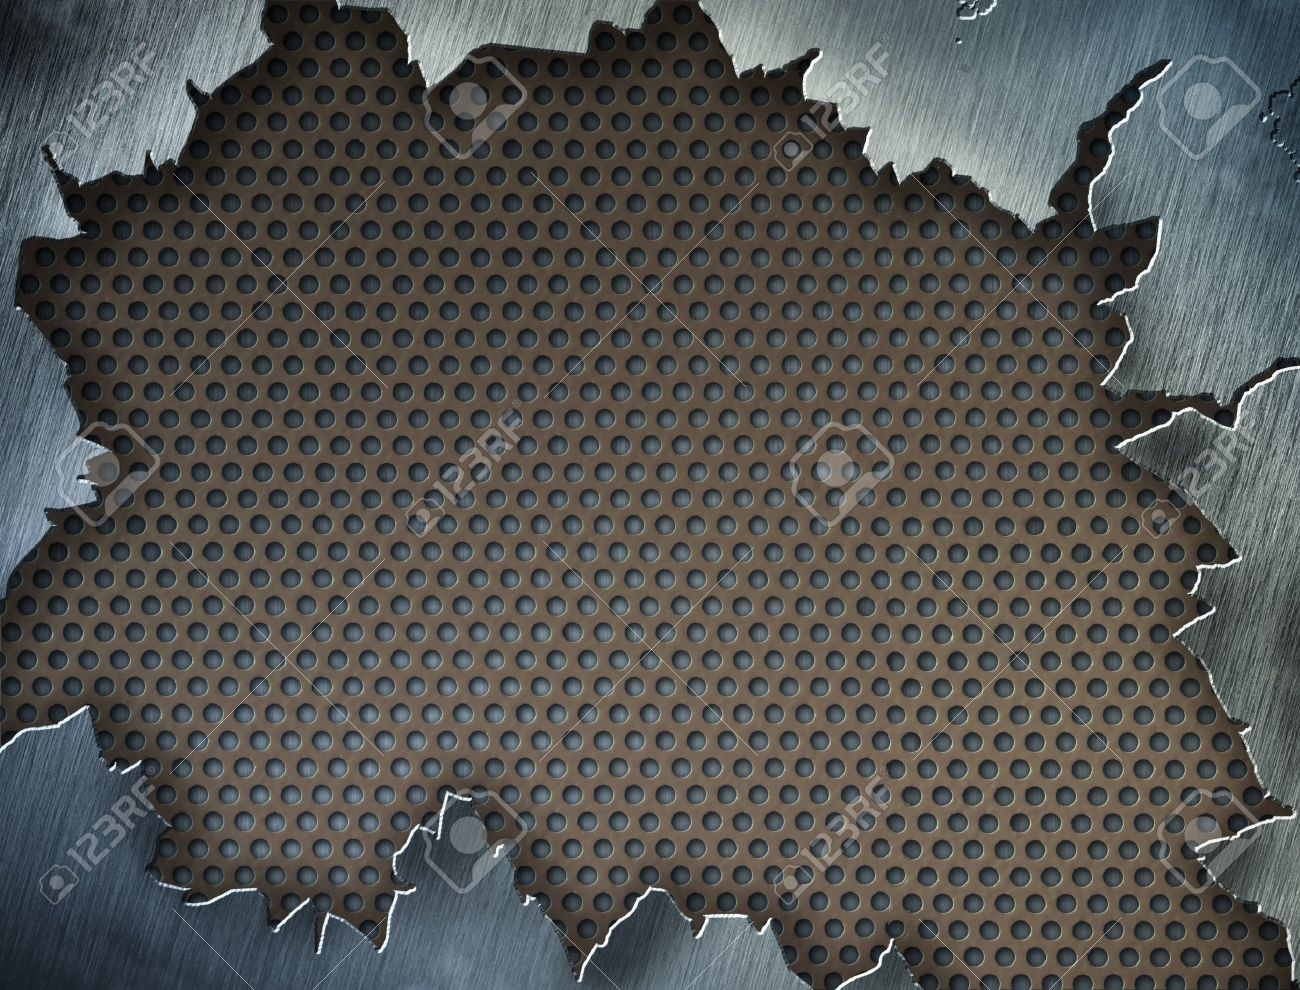 Cracked metal texture or frame or template for your design Stock Photo - 7880402